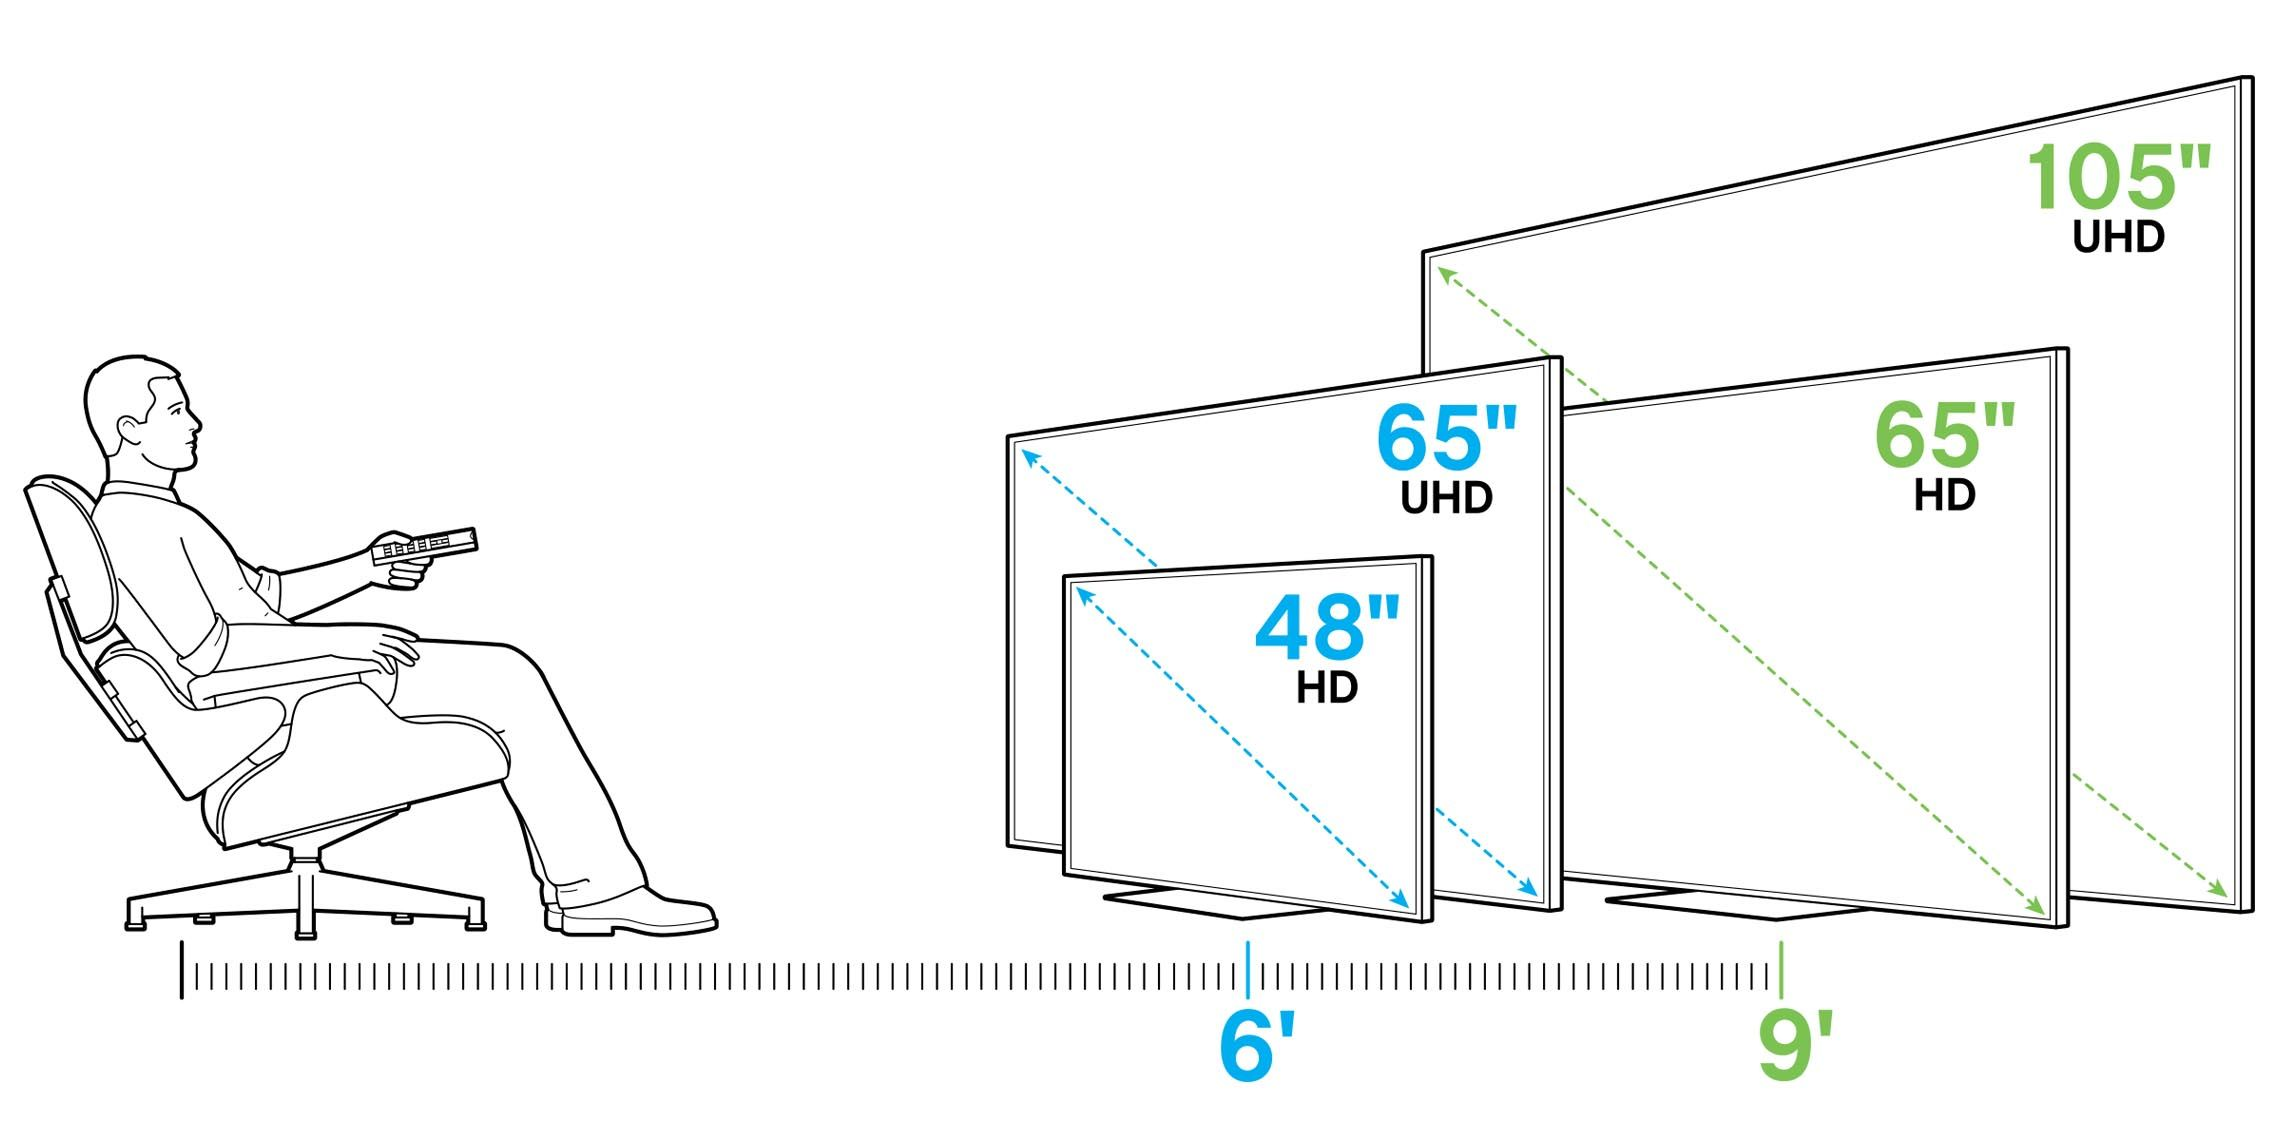 Screen diagonal = distance to couch in Inches, / by 1.6